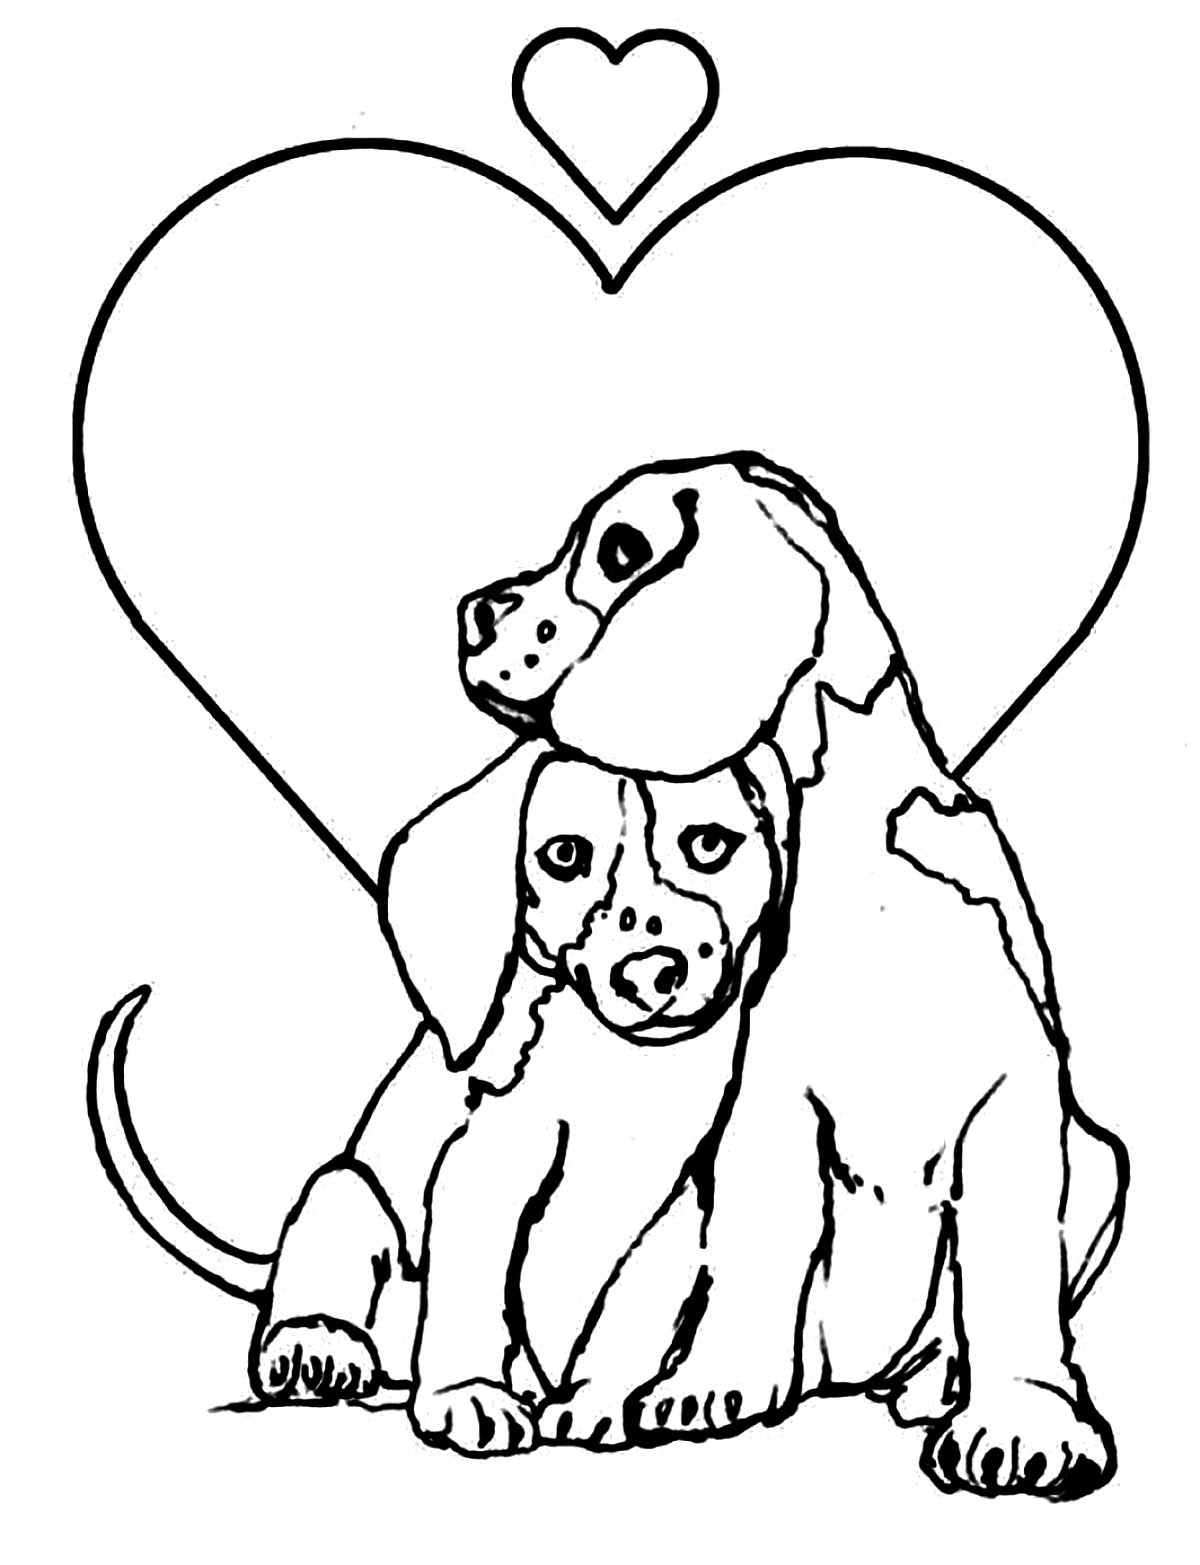 Dog For Children Loving Dogs Dogs Kids Coloring Pages